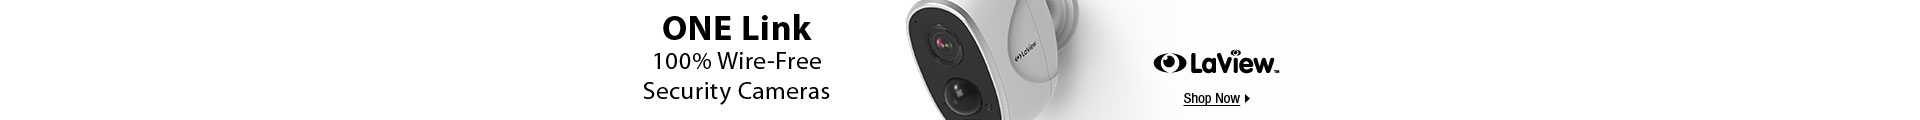 ONE Link 100% Wire-Free Security Cameras